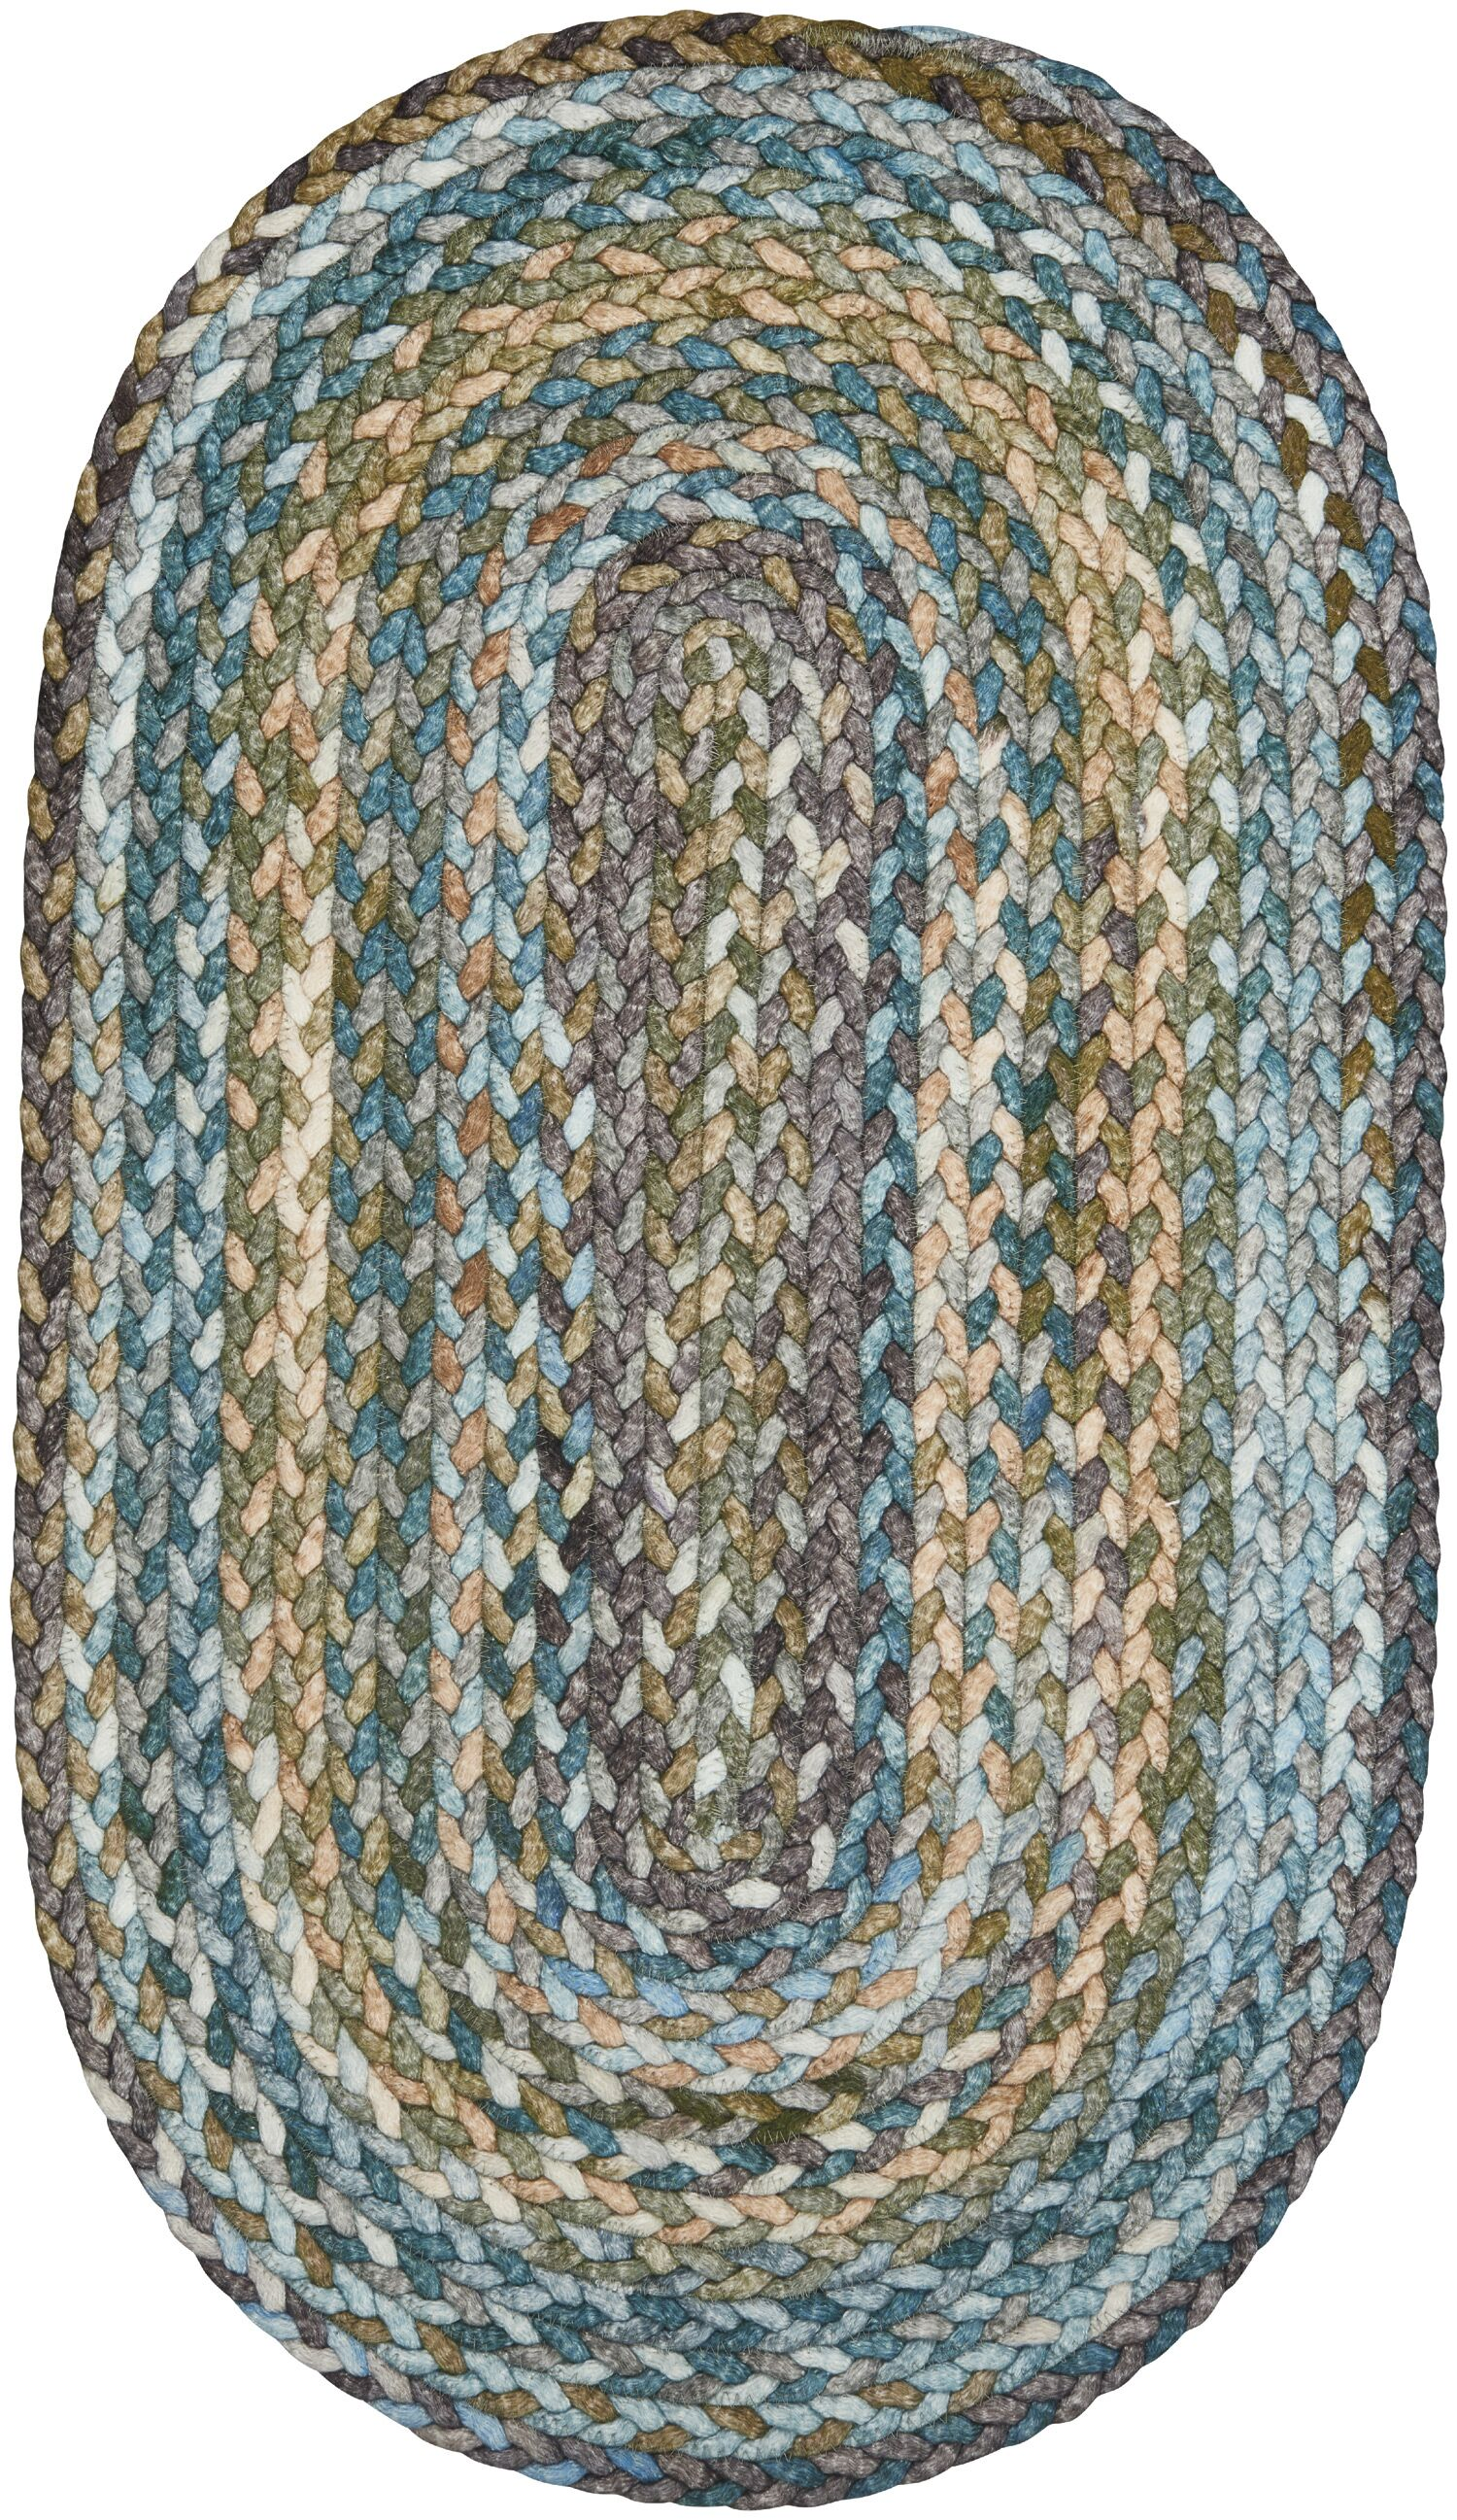 Ryland Braided Green/Blue Area Rug Rug Size: Oval 4' x 6'